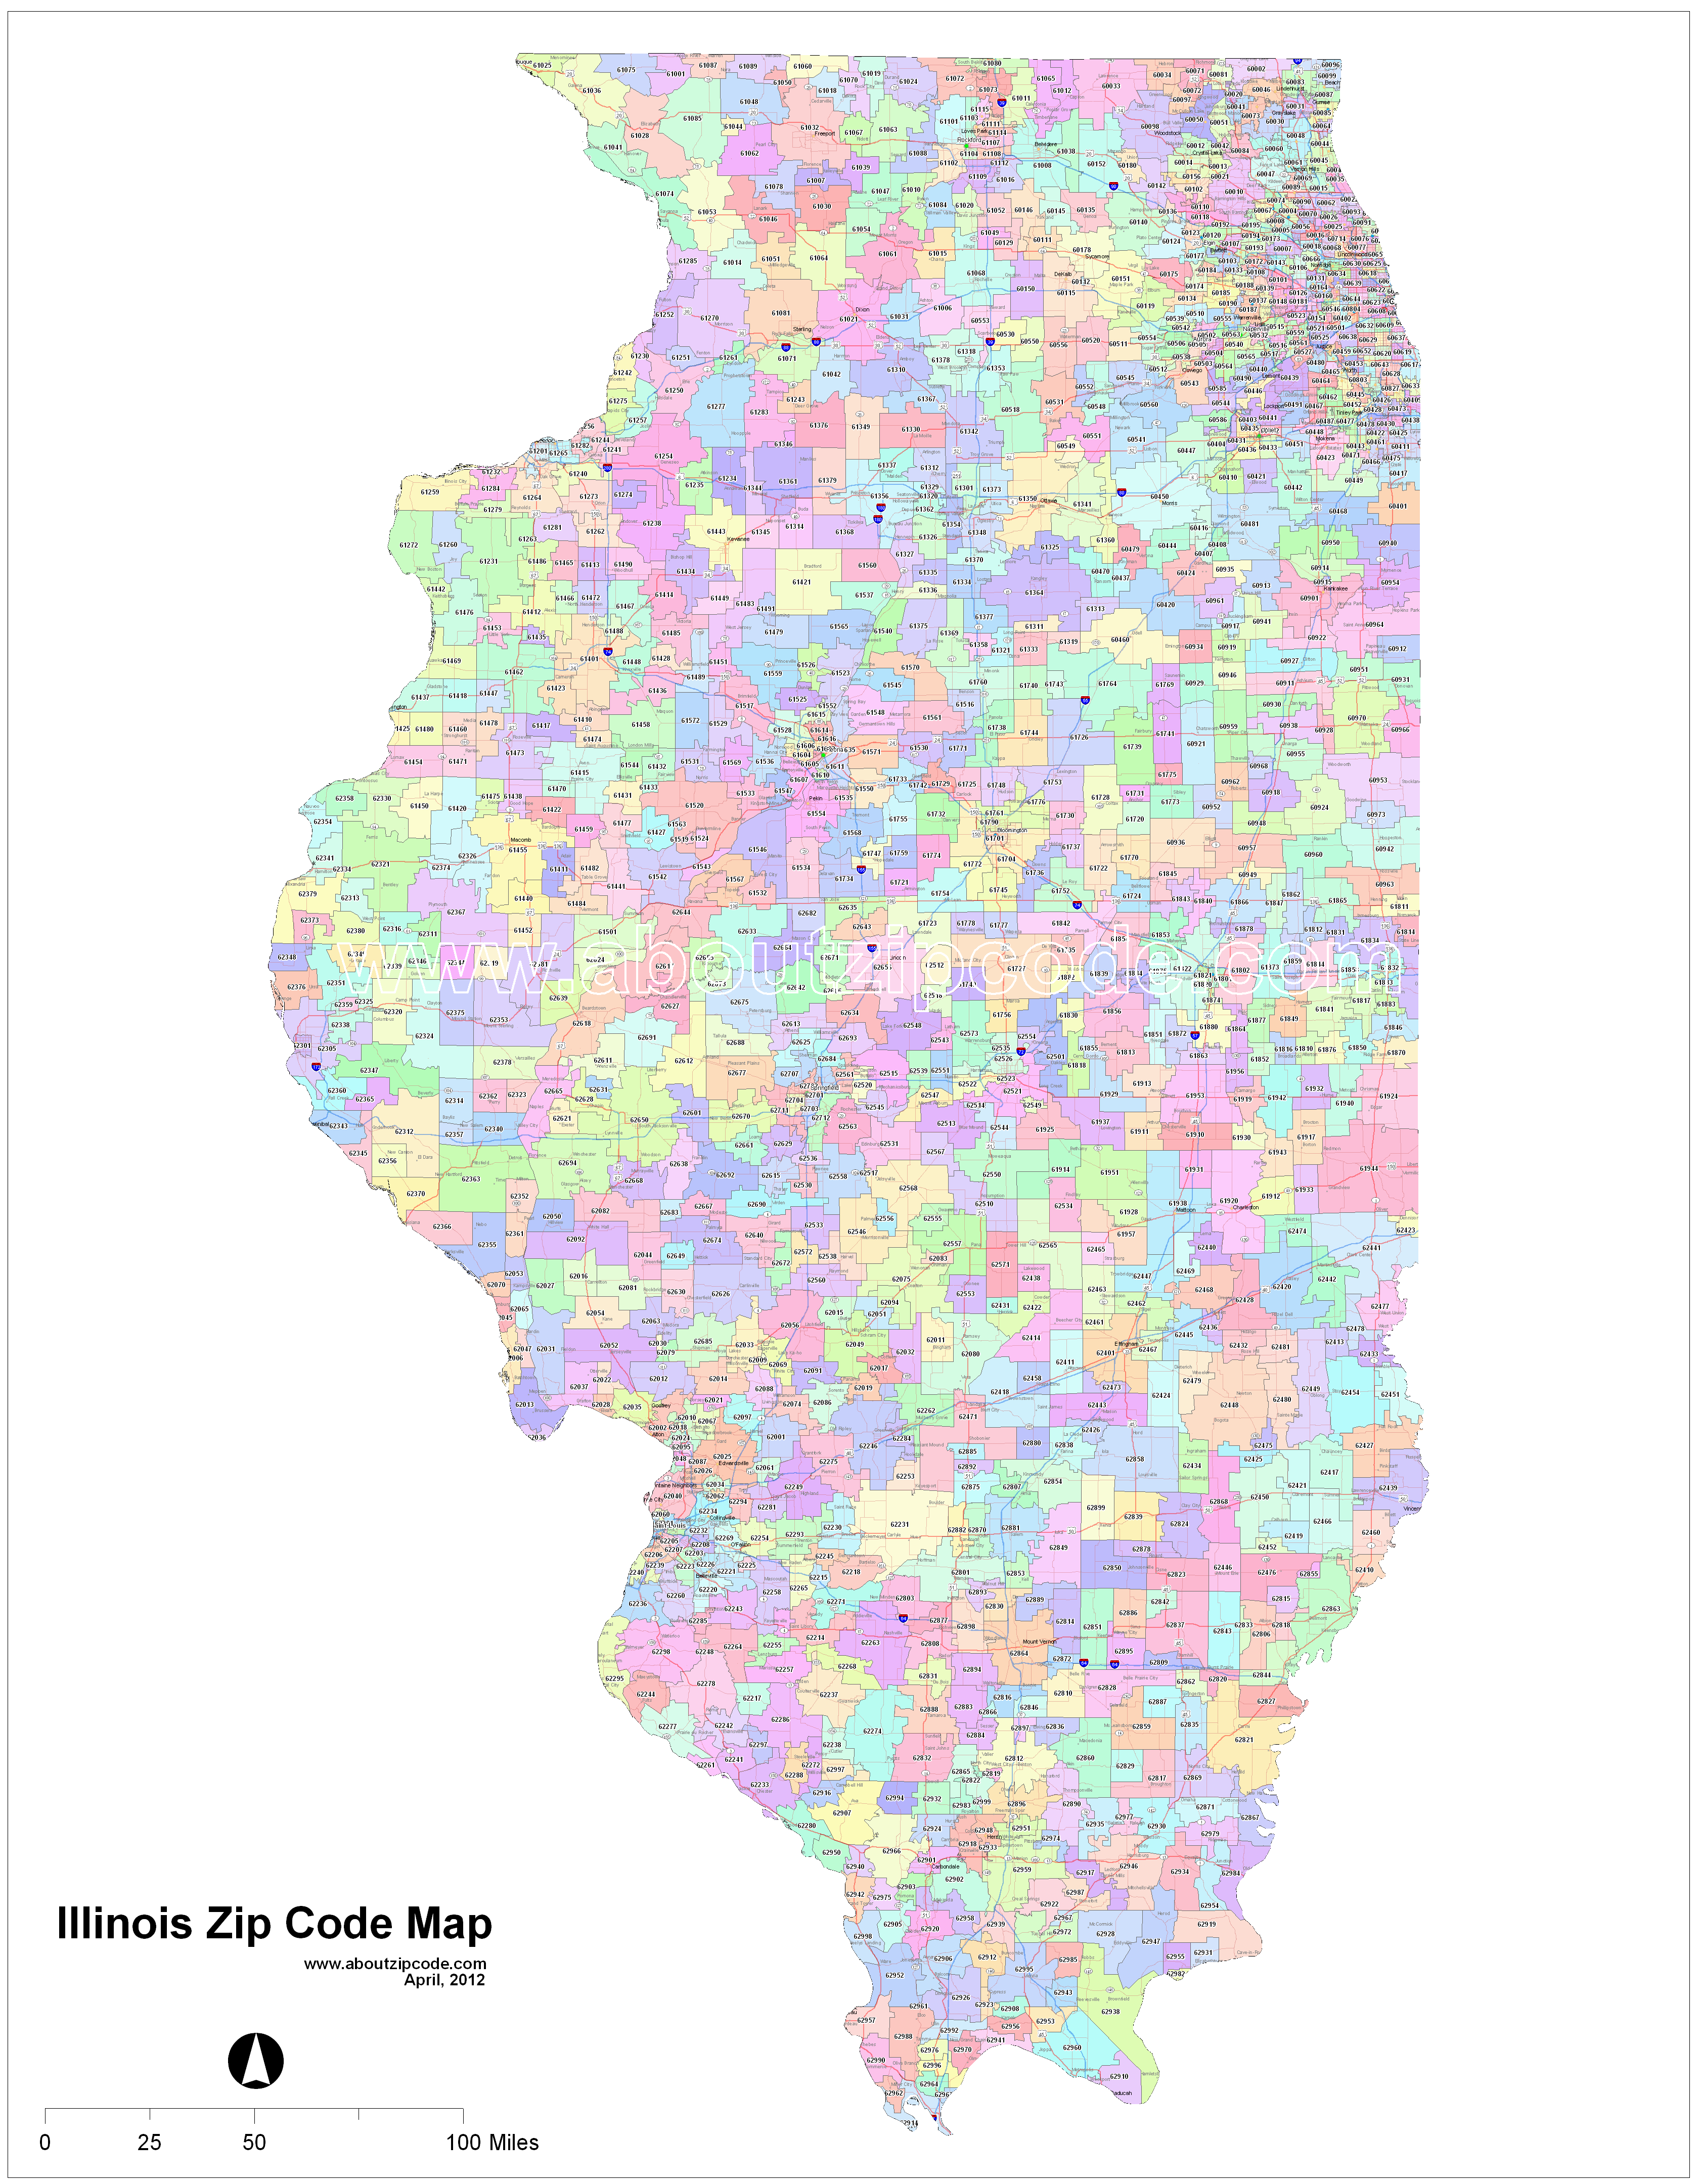 Illinois Zip Code Maps Free Illinois Zip Code Maps